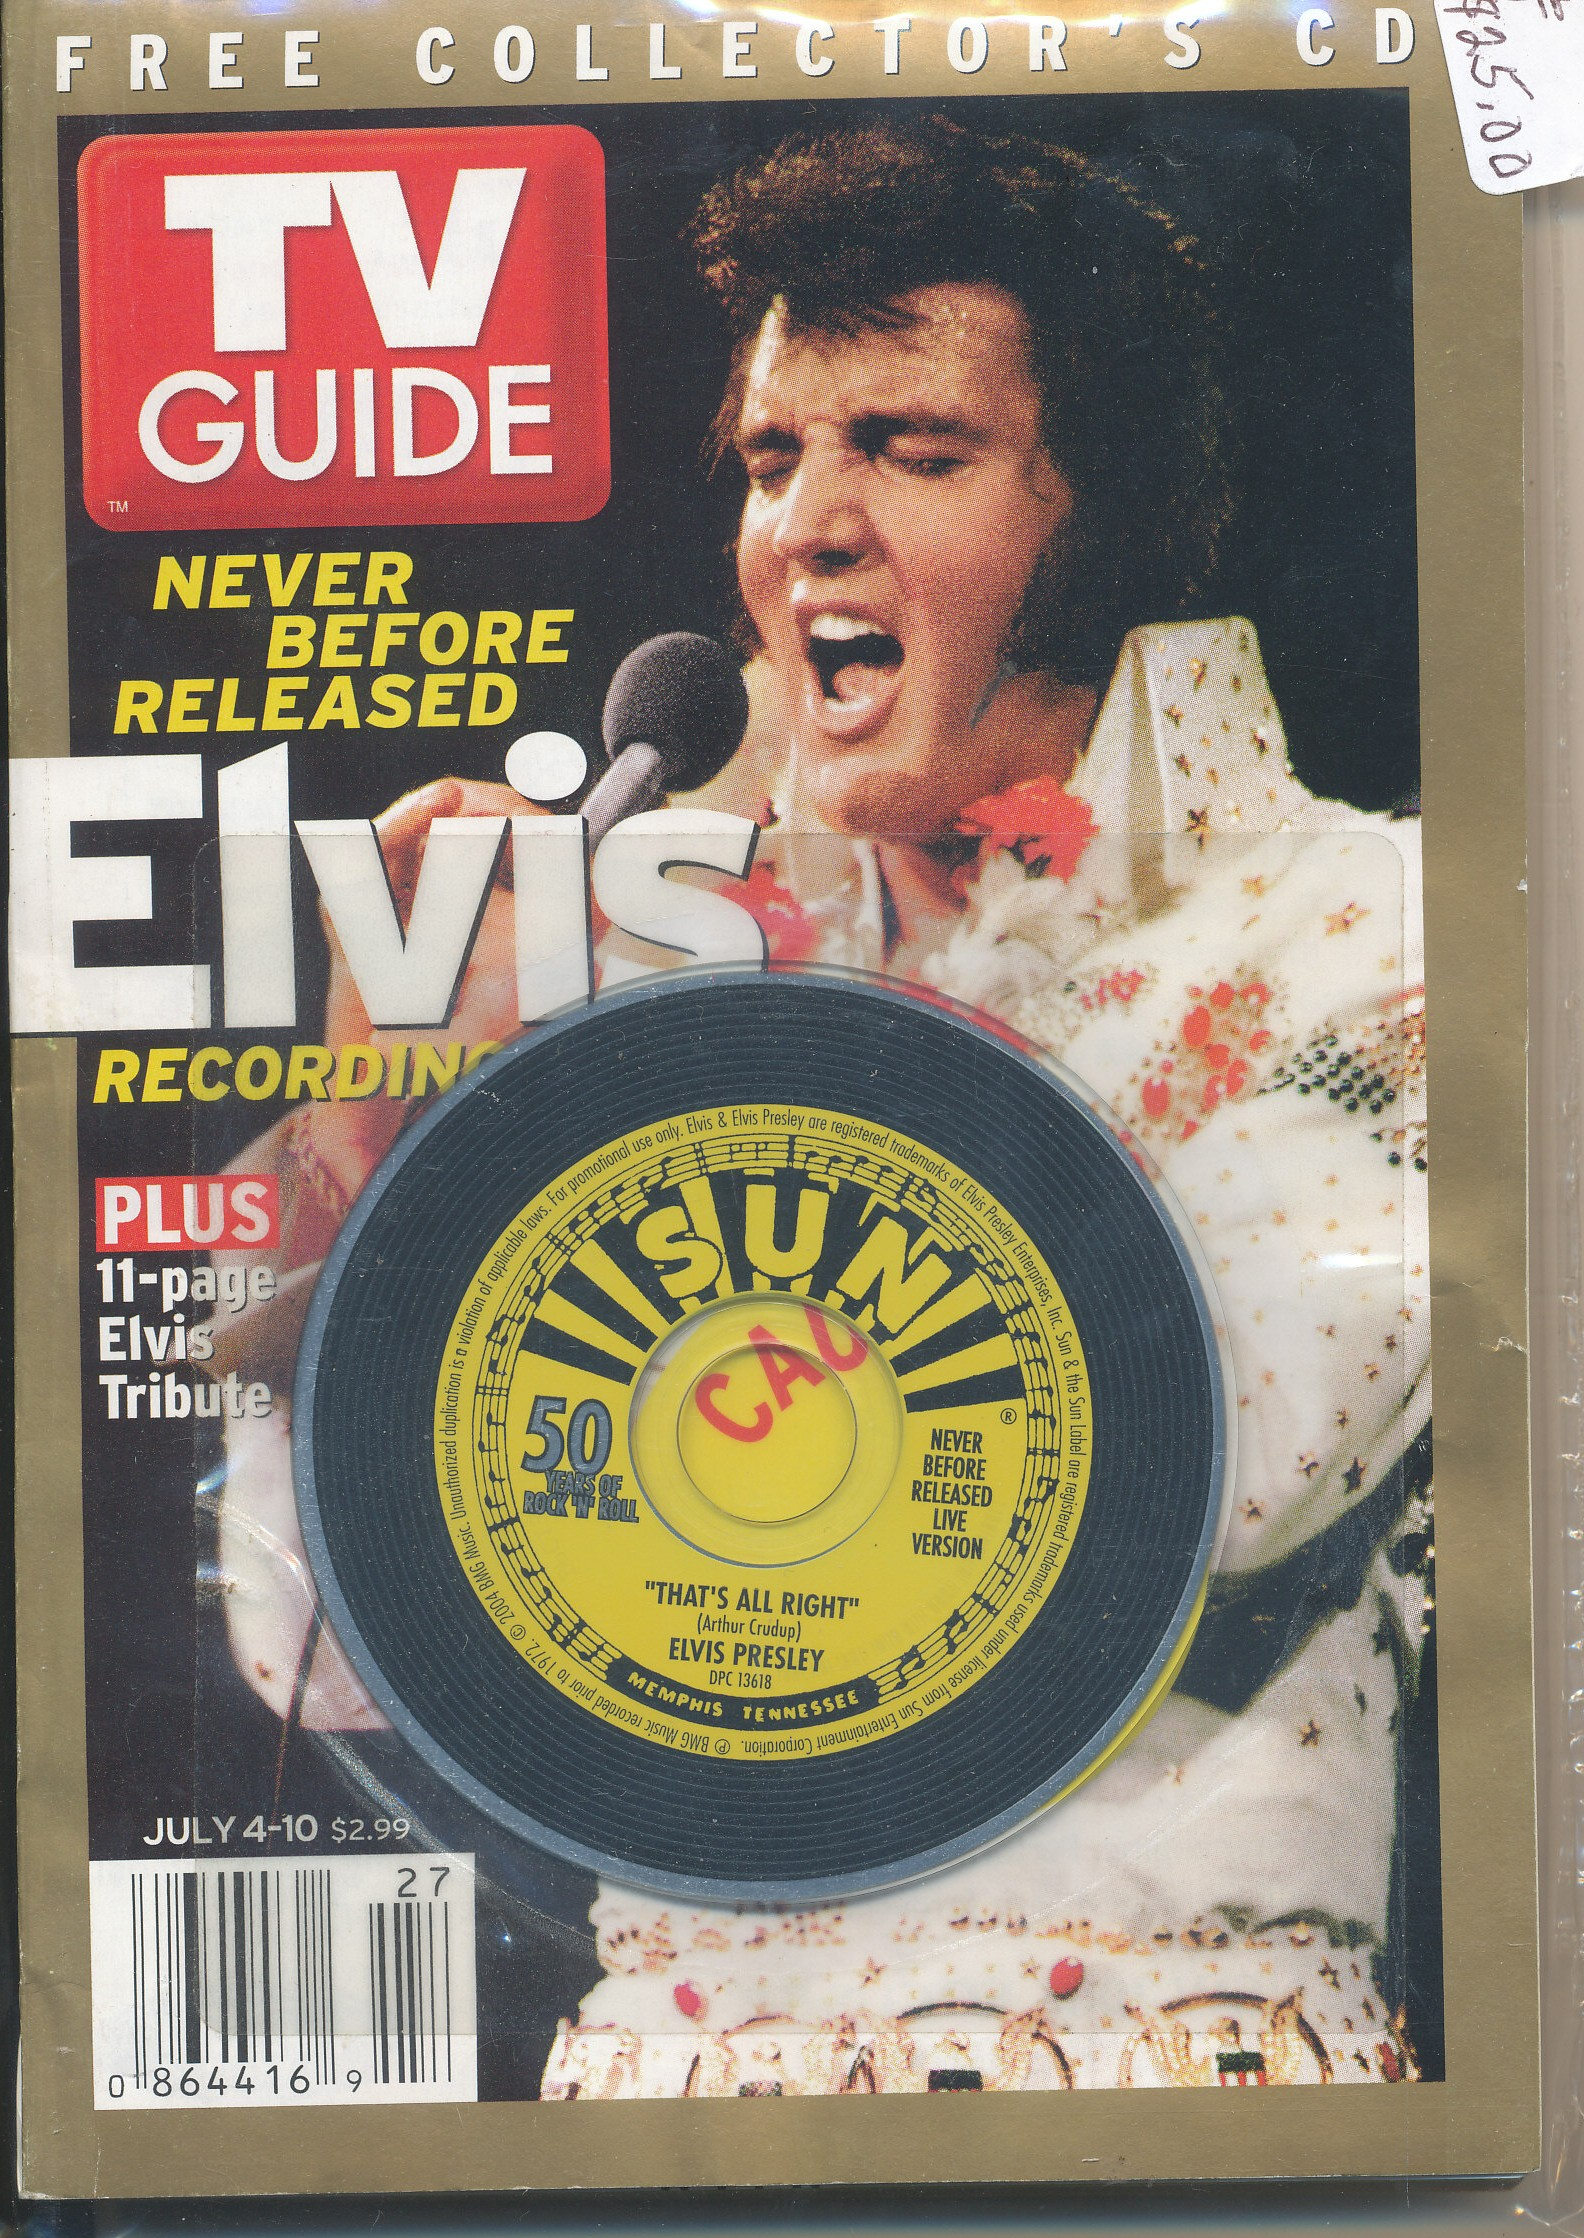 TV Guide featuring ELVIS free collector's CD, 11 page tribute